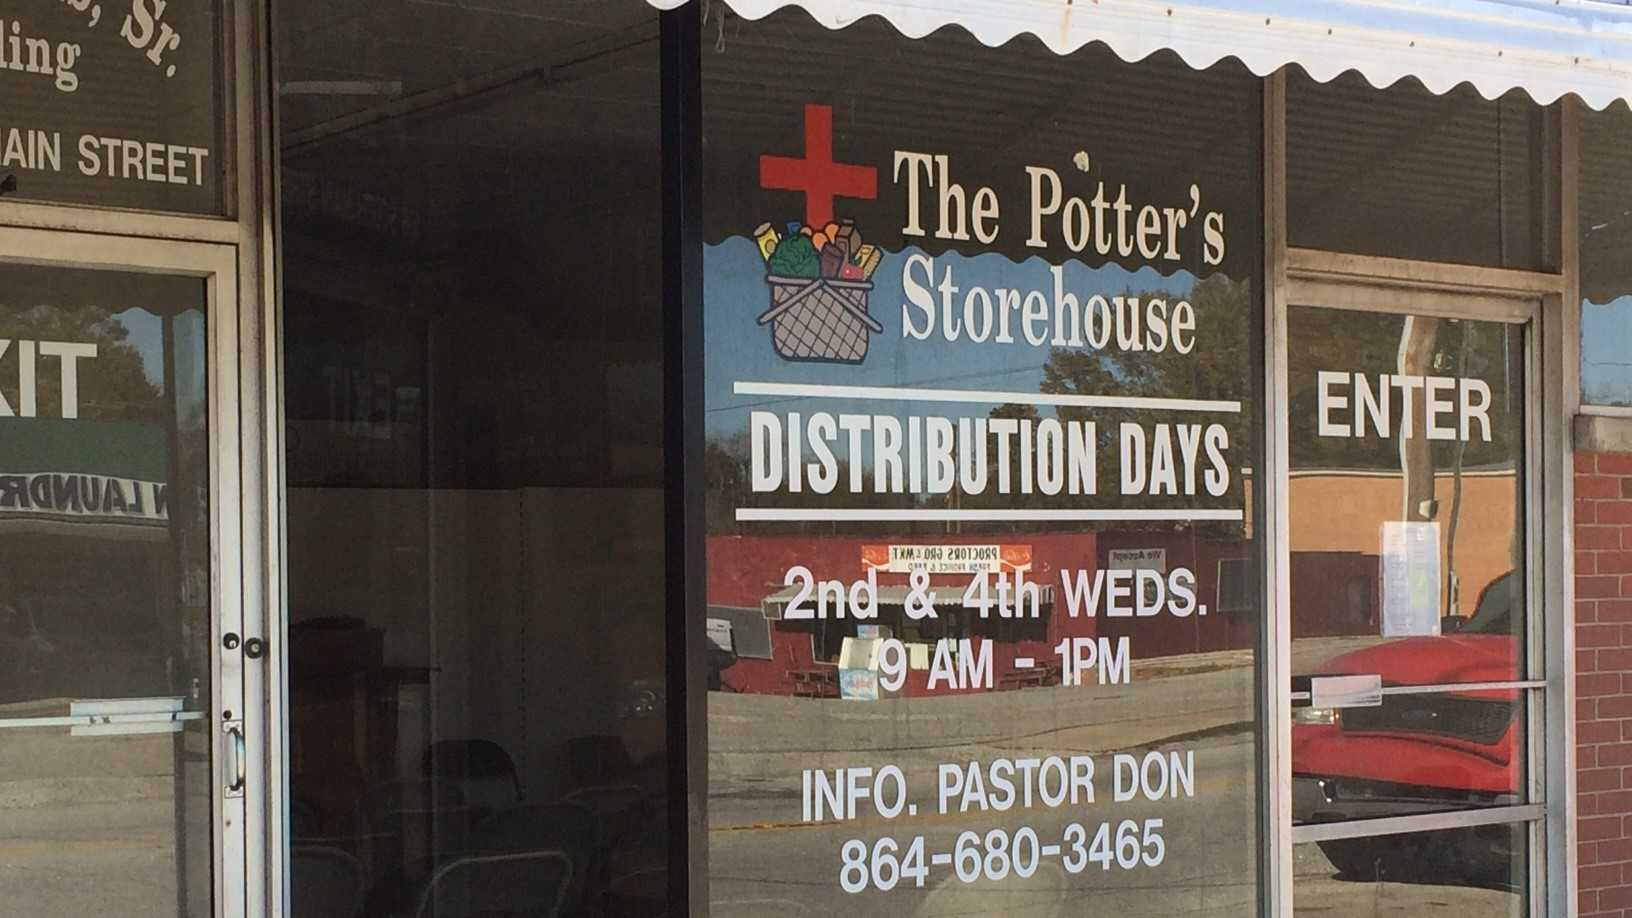 The Potter's Storehouse in Jonesville is hundreds of turkeys short of its goal to give away 500 turkeys this Thanksgiving.